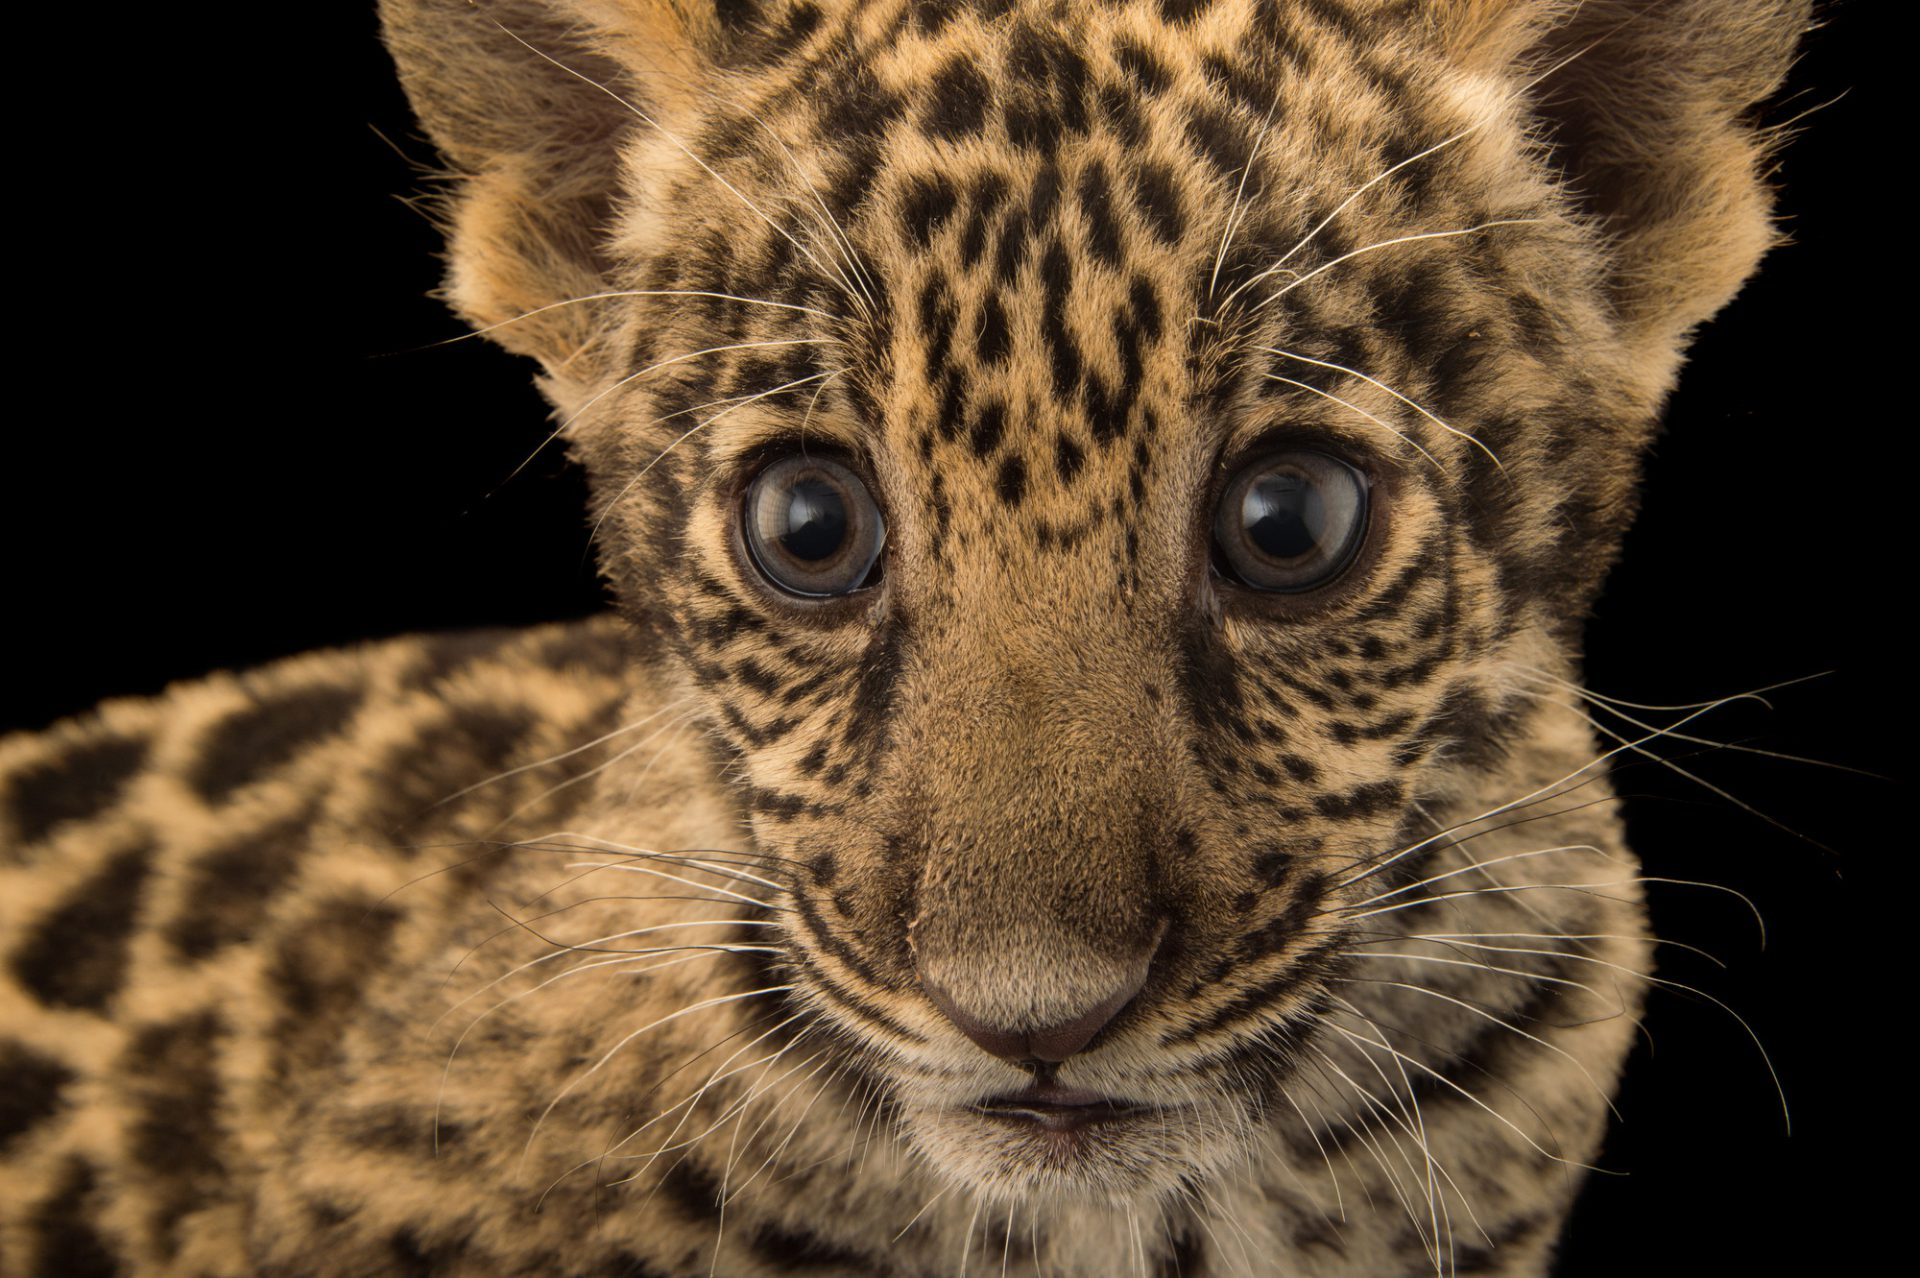 Picture of a two-month old, federally endangered jaguar cub (Panthera onca) named Teiku at the Parque Zoologico Nacional in Santo Domingo, Dominican Republic.